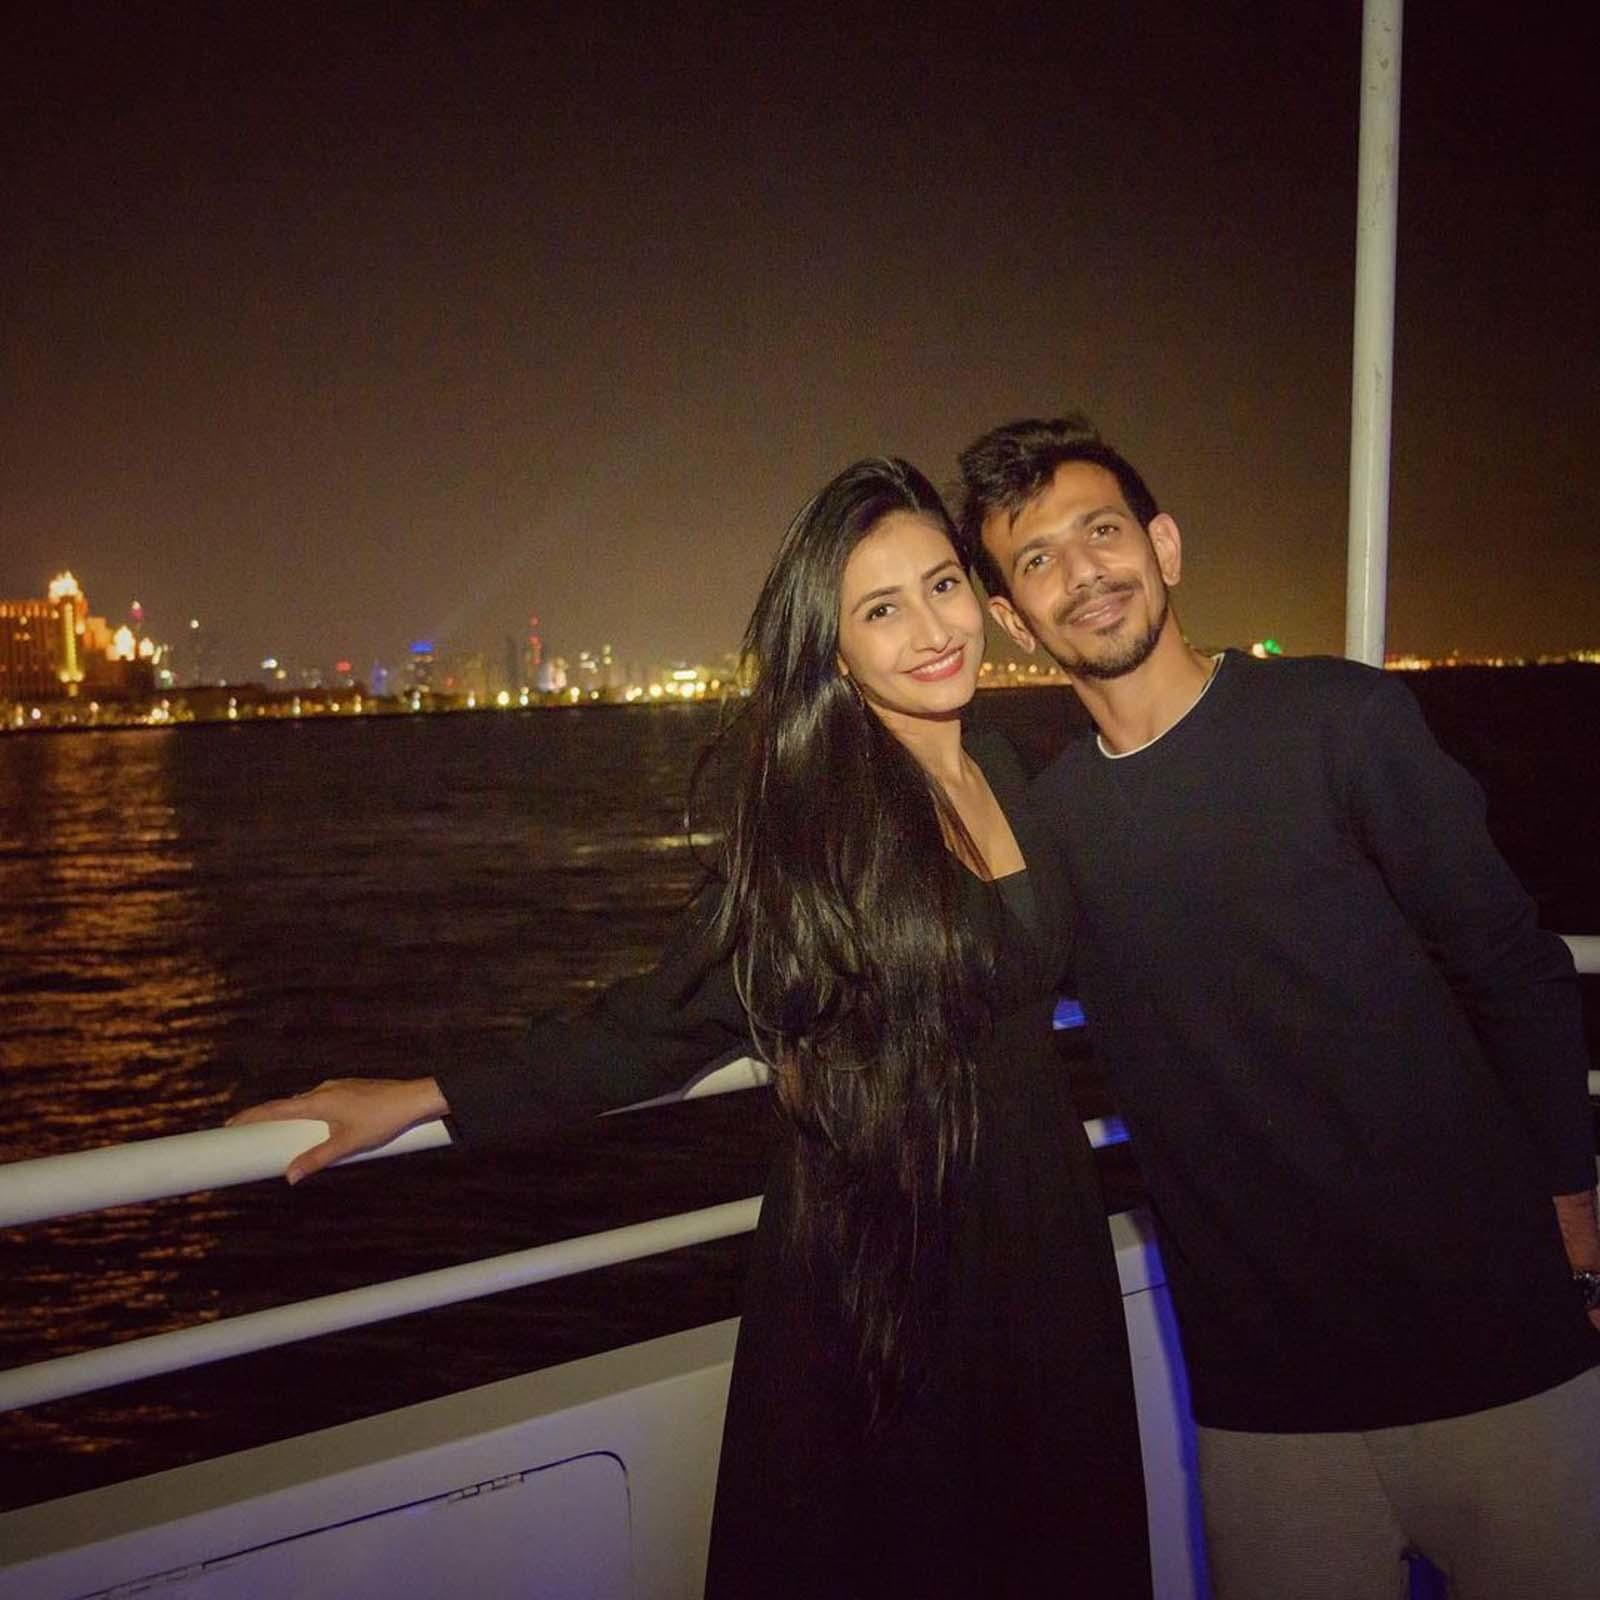 Yuzvendra Chahal and fiance Dhanashree Verma aren't afraid of a little PDA